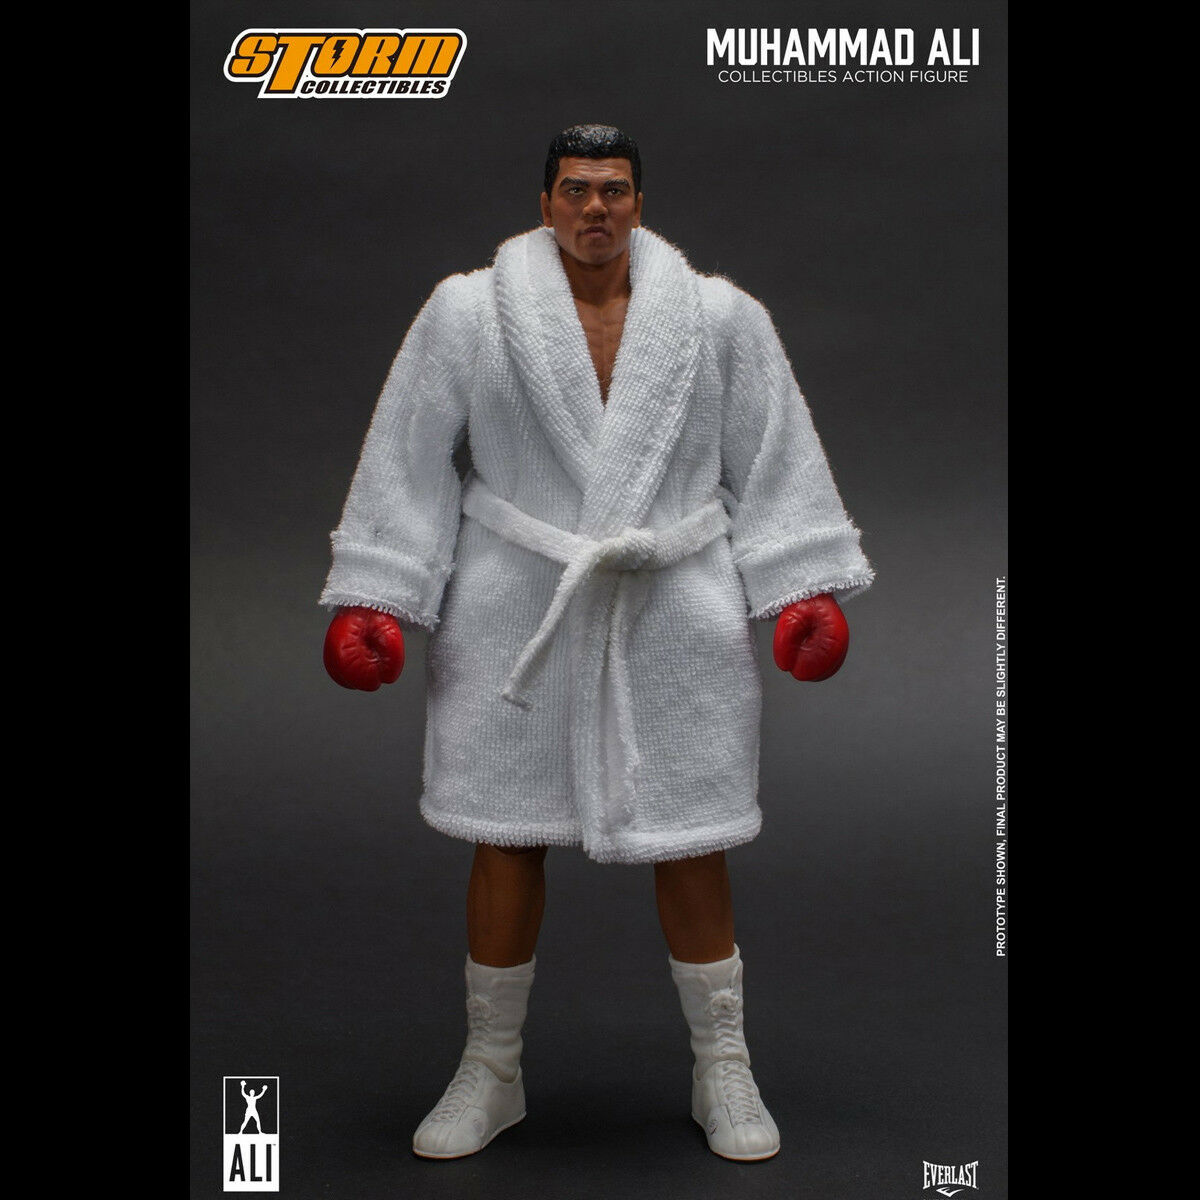 Storm Toys 1 12 Scale MUHAMMAD ALI Collectibles Action Figure